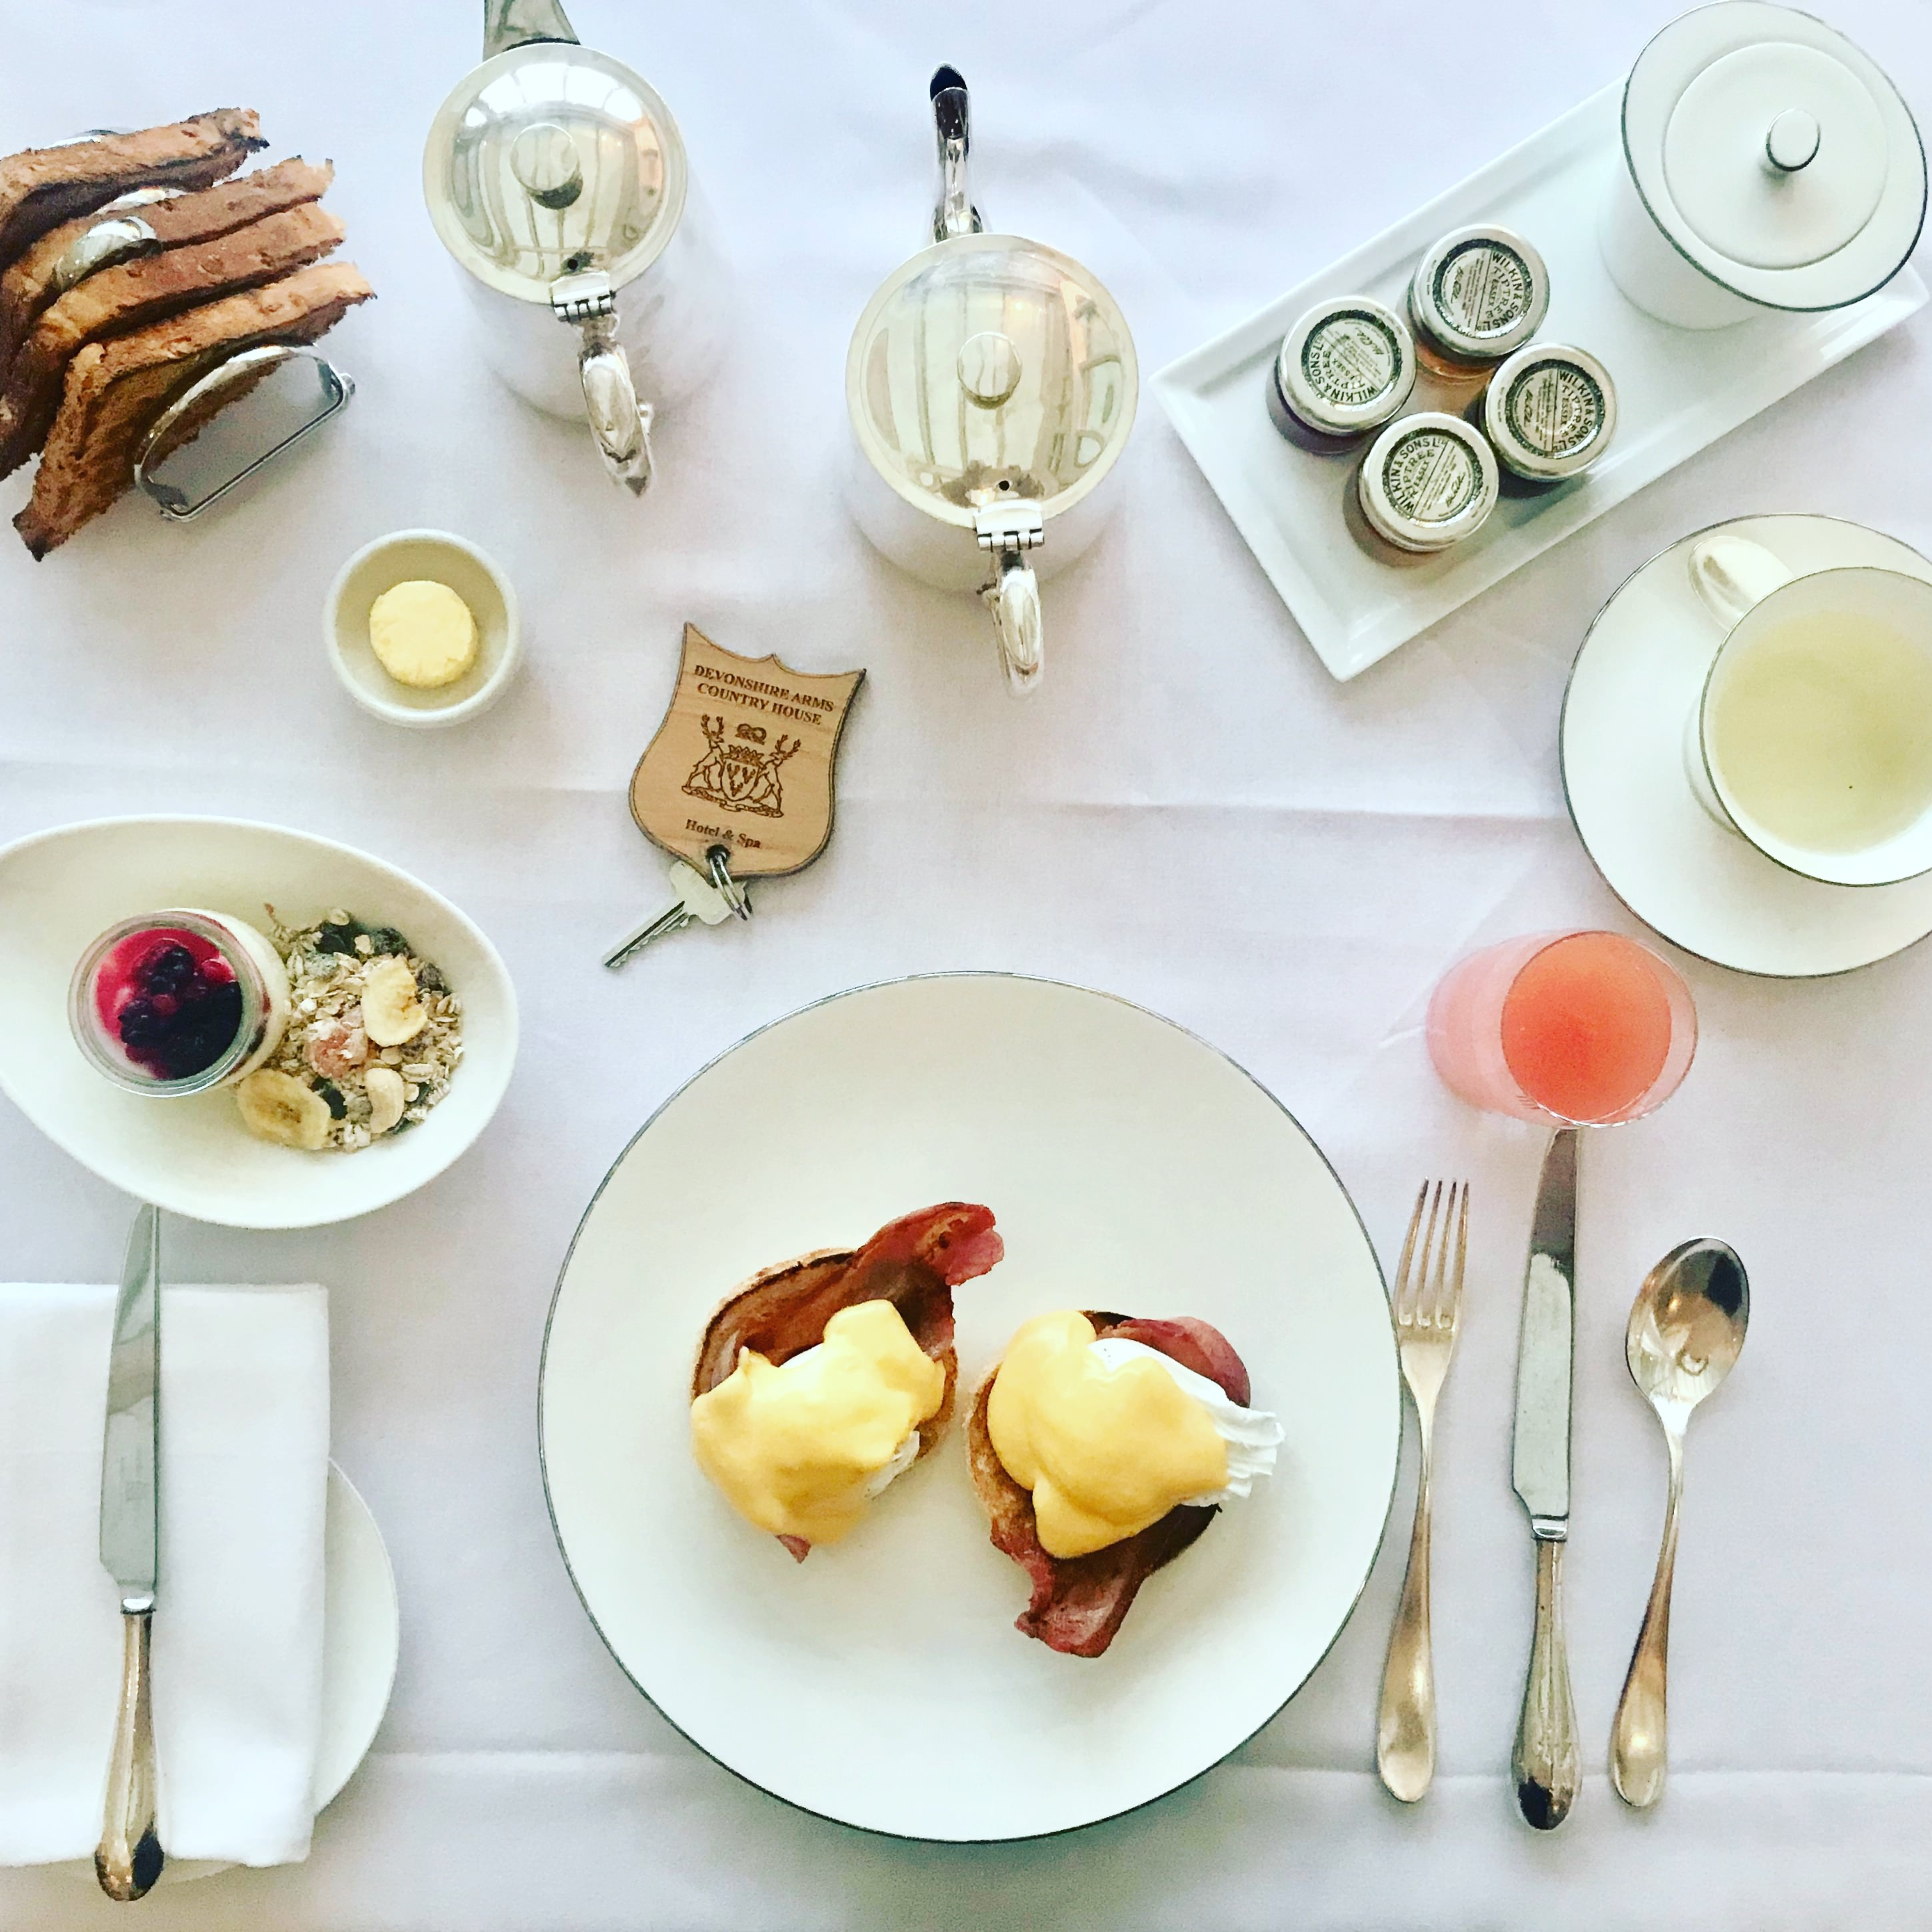 Devonshire Arms Hotel and Spa breakfast